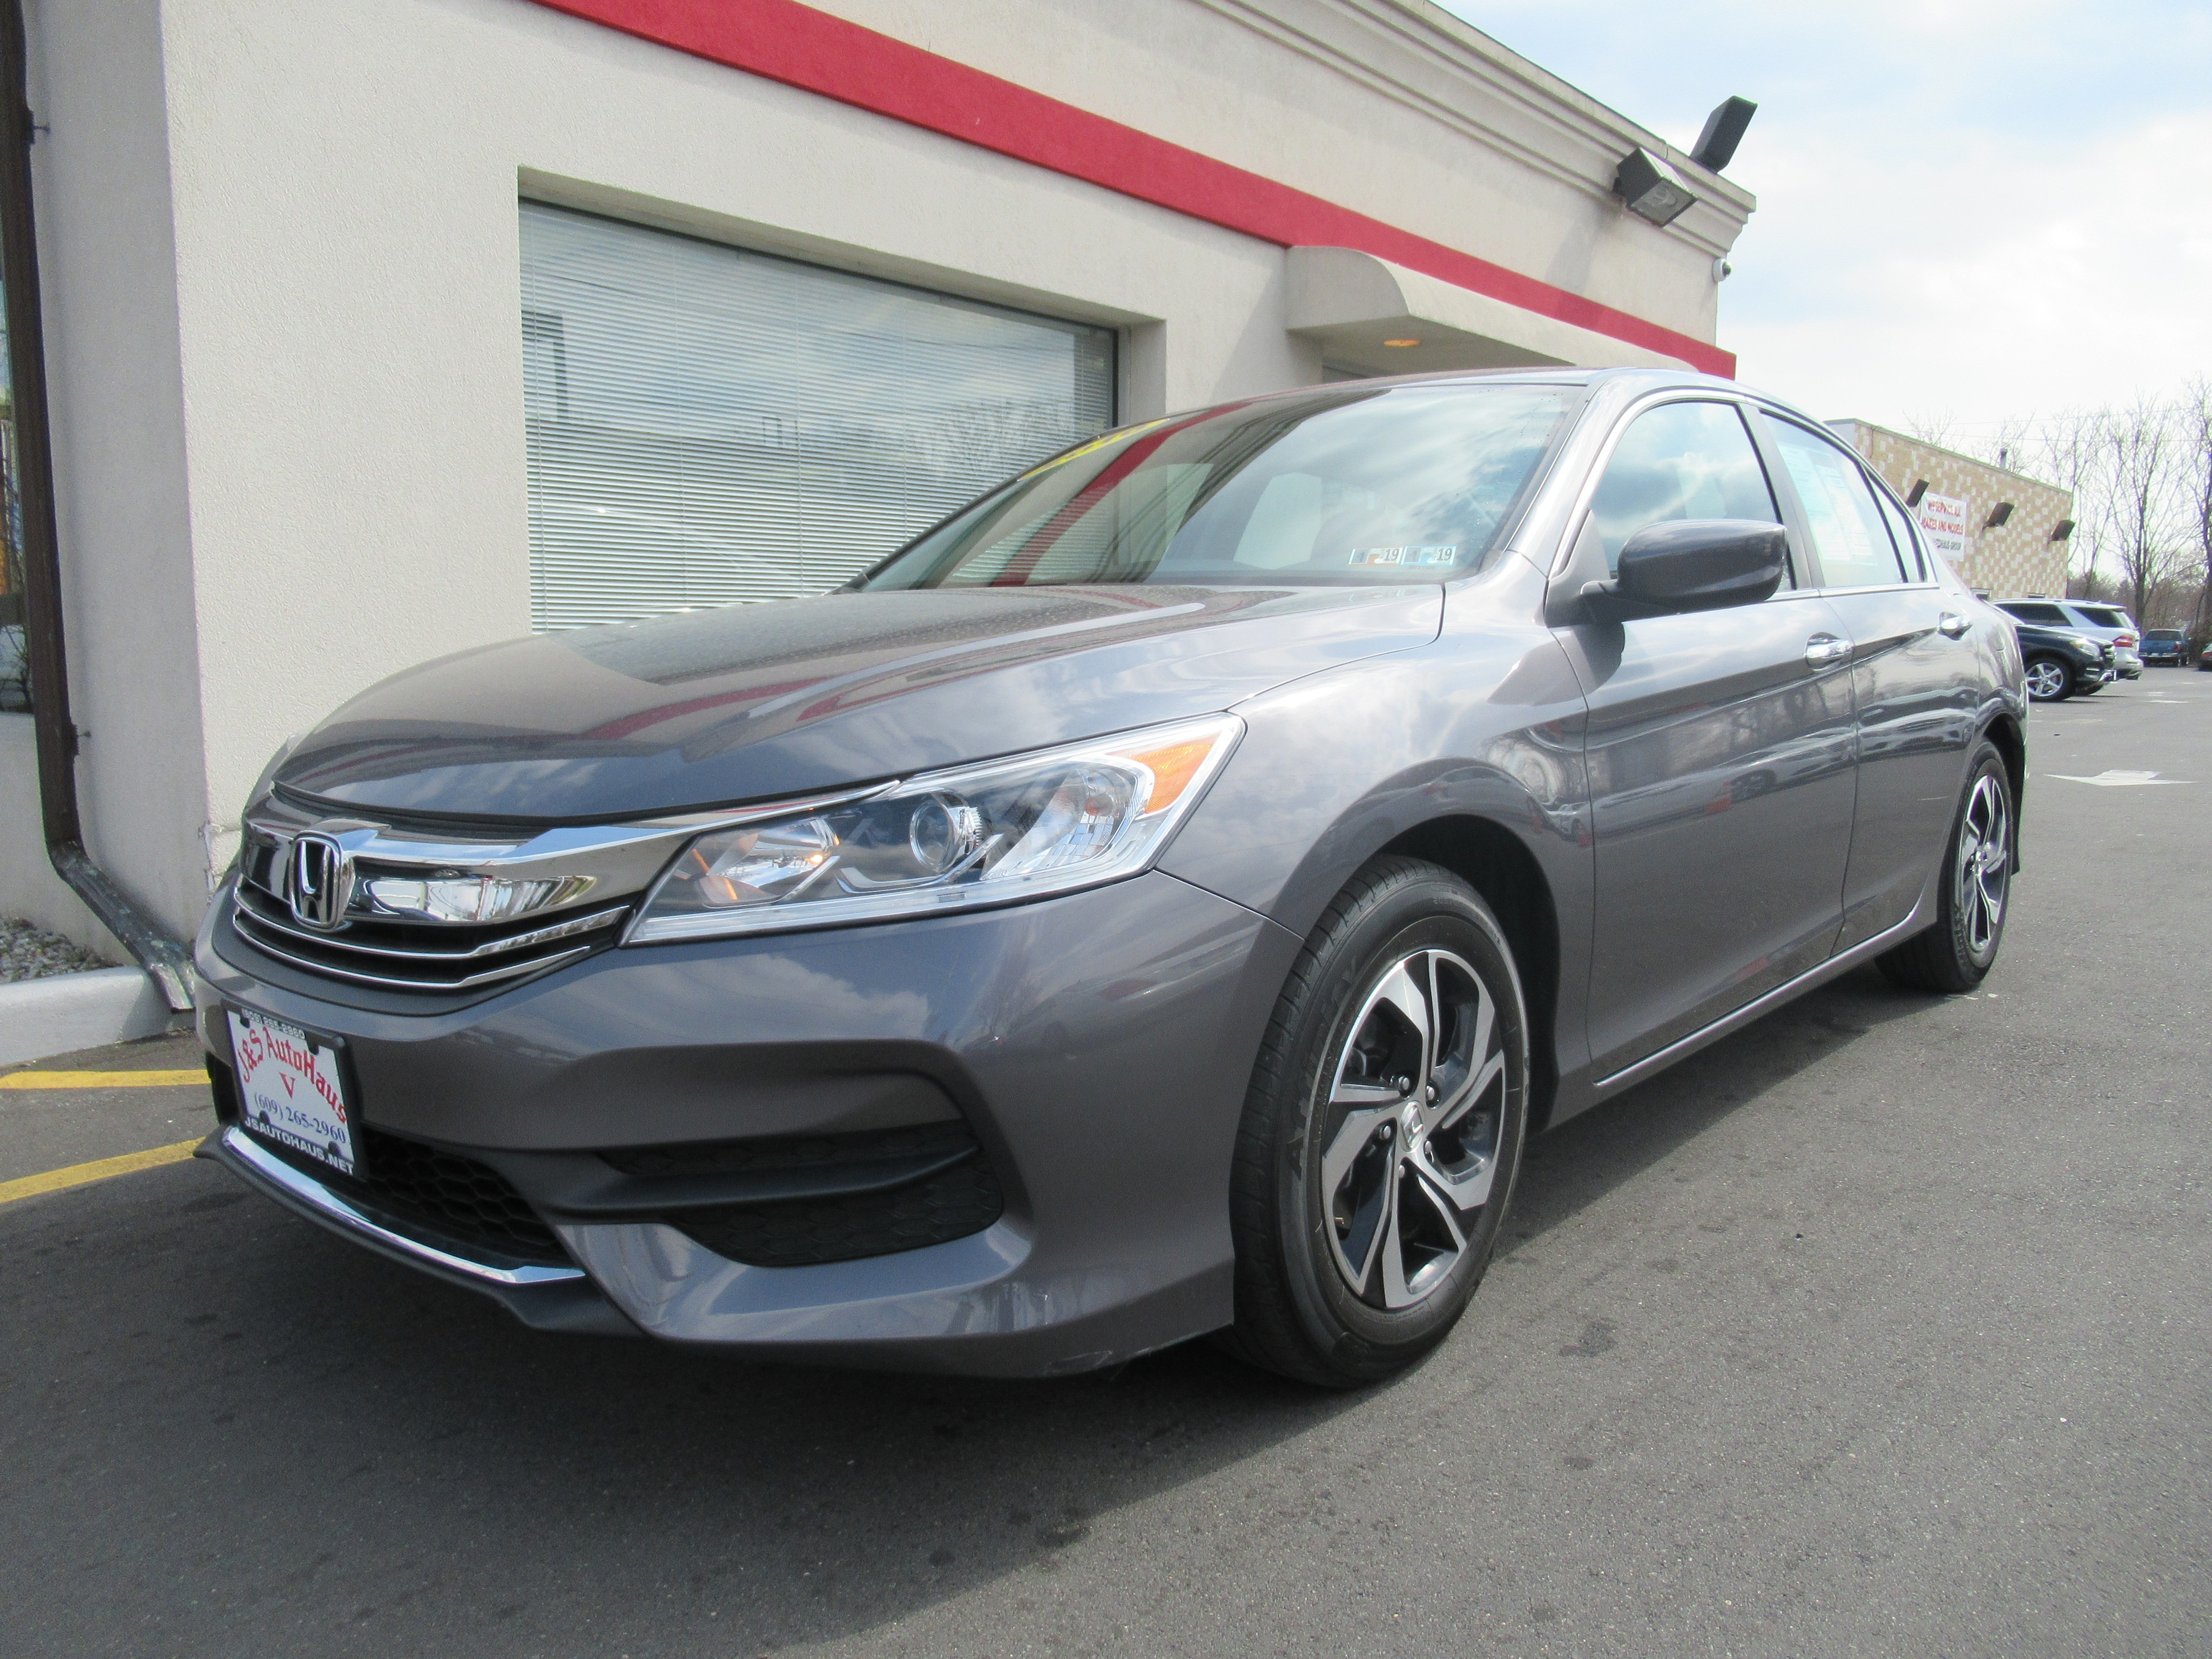 Photo Used 2016 Honda Accord Stock NumberB498 For Sale  Trenton, New Jersey